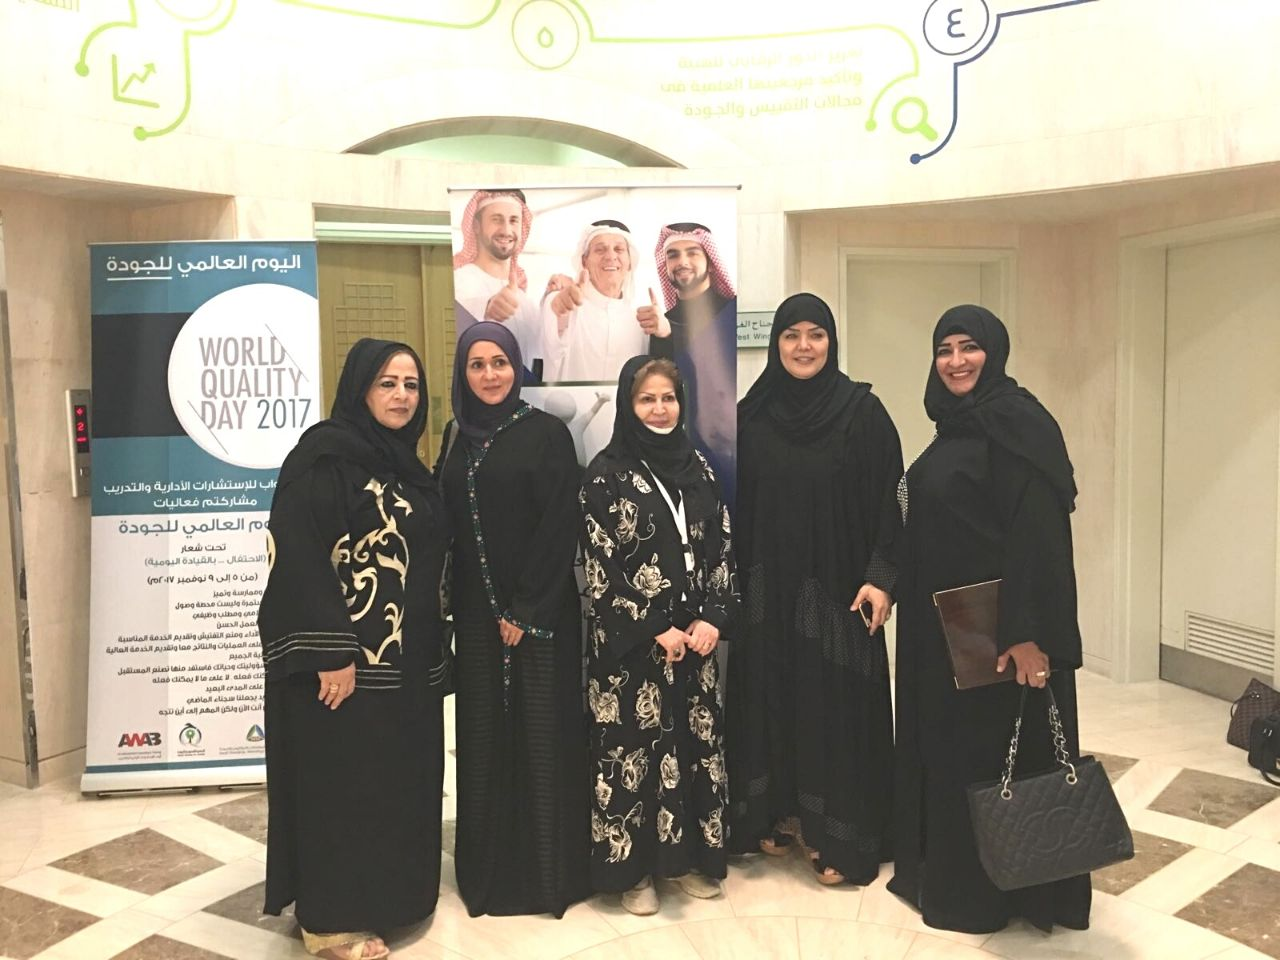 Amani AlKhalili, CEO of Awab and a group of Trainers